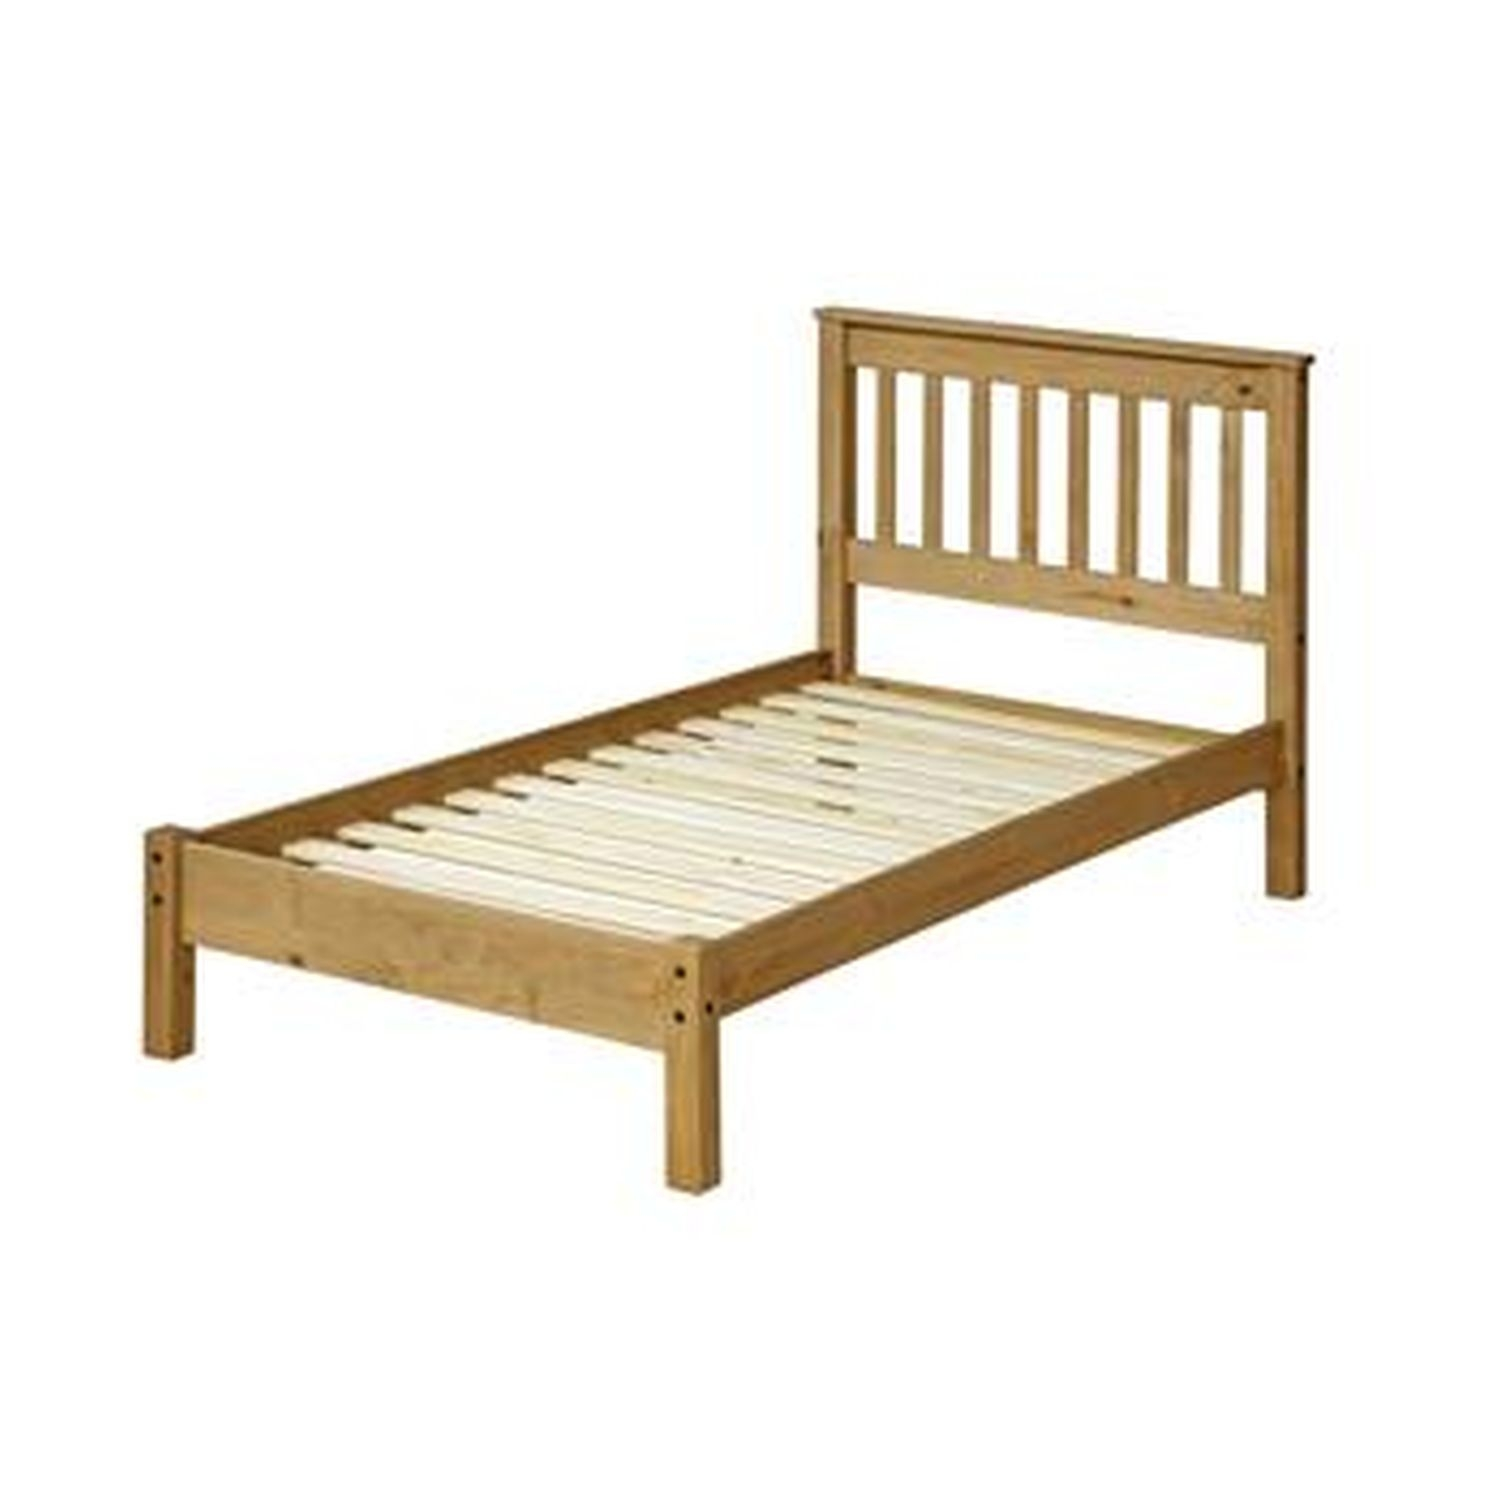 Image of Connor Double Slatted Bedframe